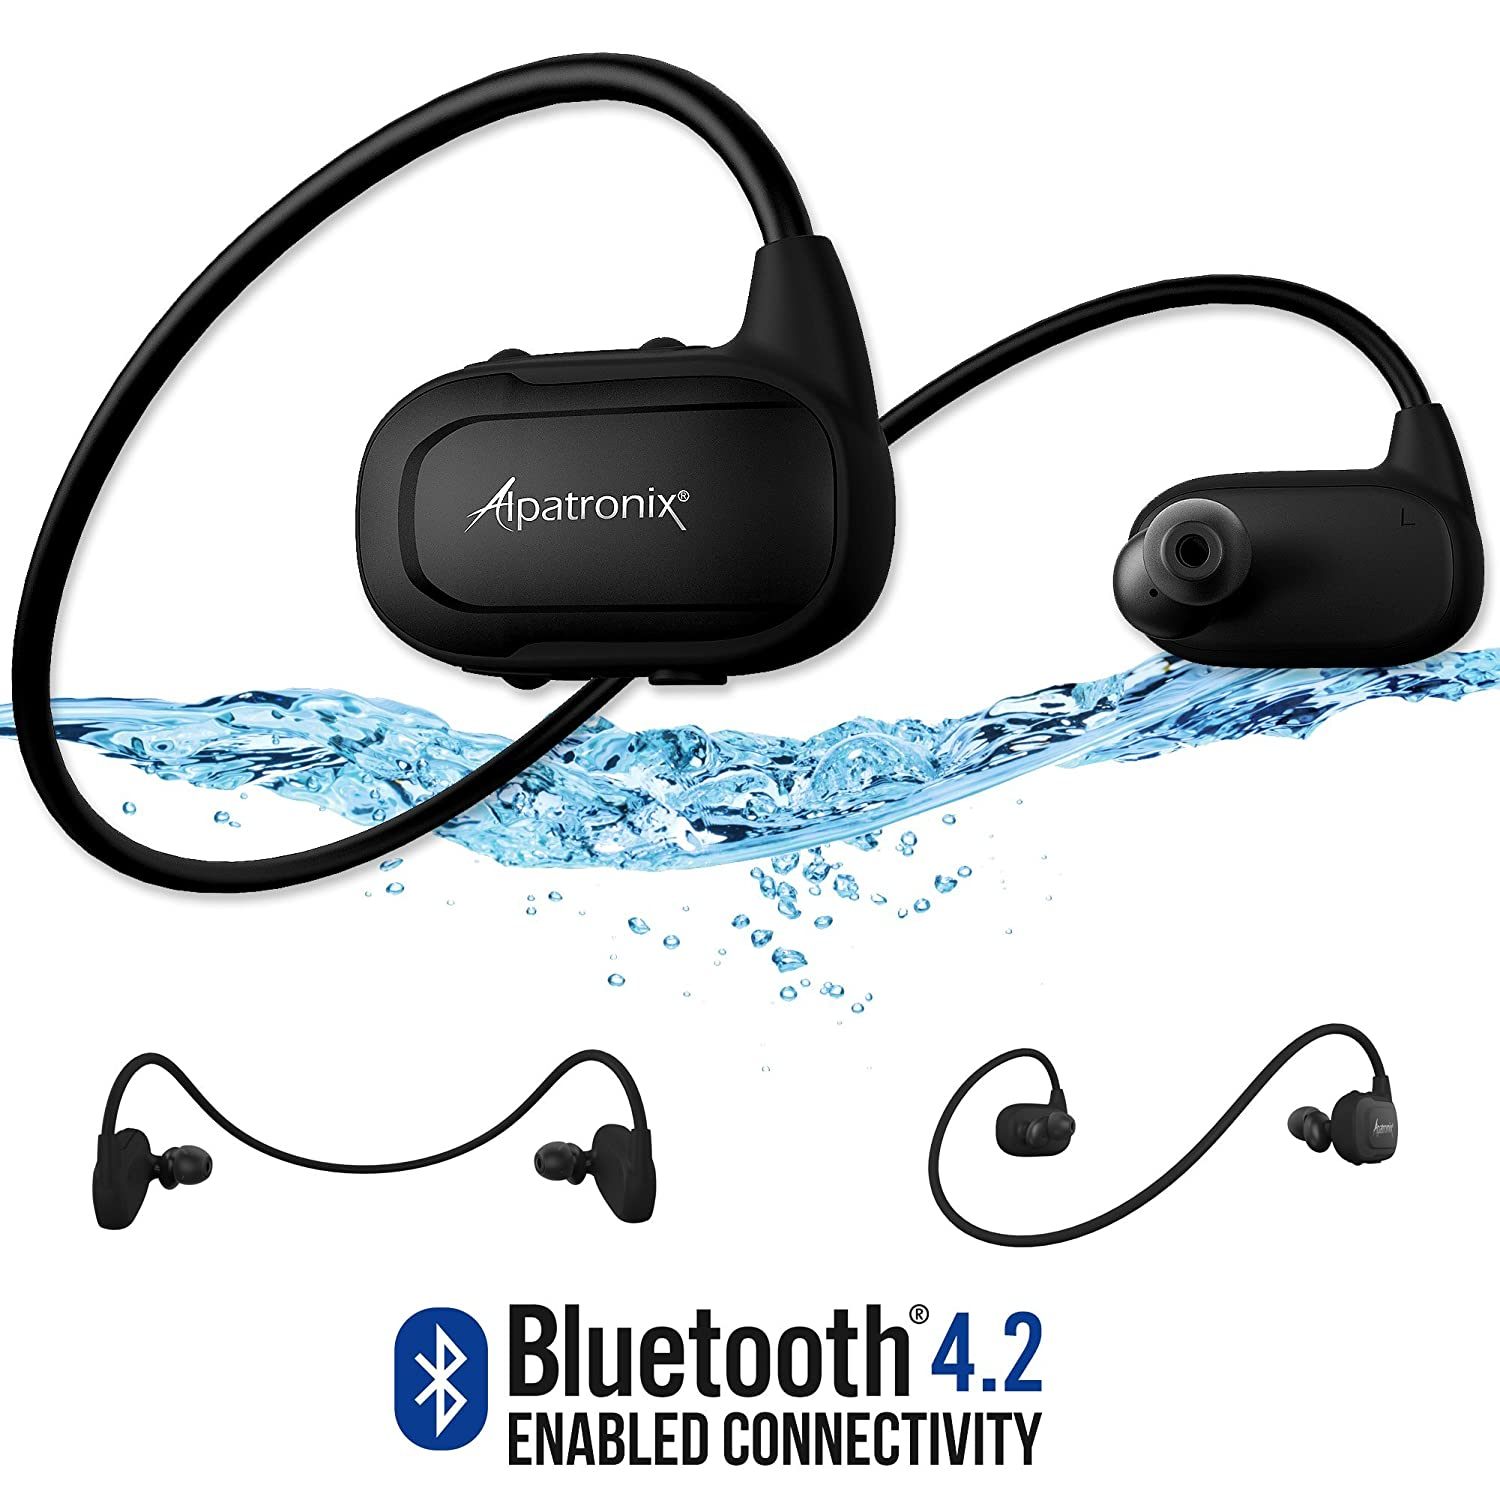 [Upgraded] Waterproof Bluetooth Earbuds, Alpatronix [HX250] BT 4.2 IPX7 Wireless Sweatproof Sport Headphones & Headset w/Mic, 8GB Built-in Flash Drive for Swimming and Running Earphones - Black